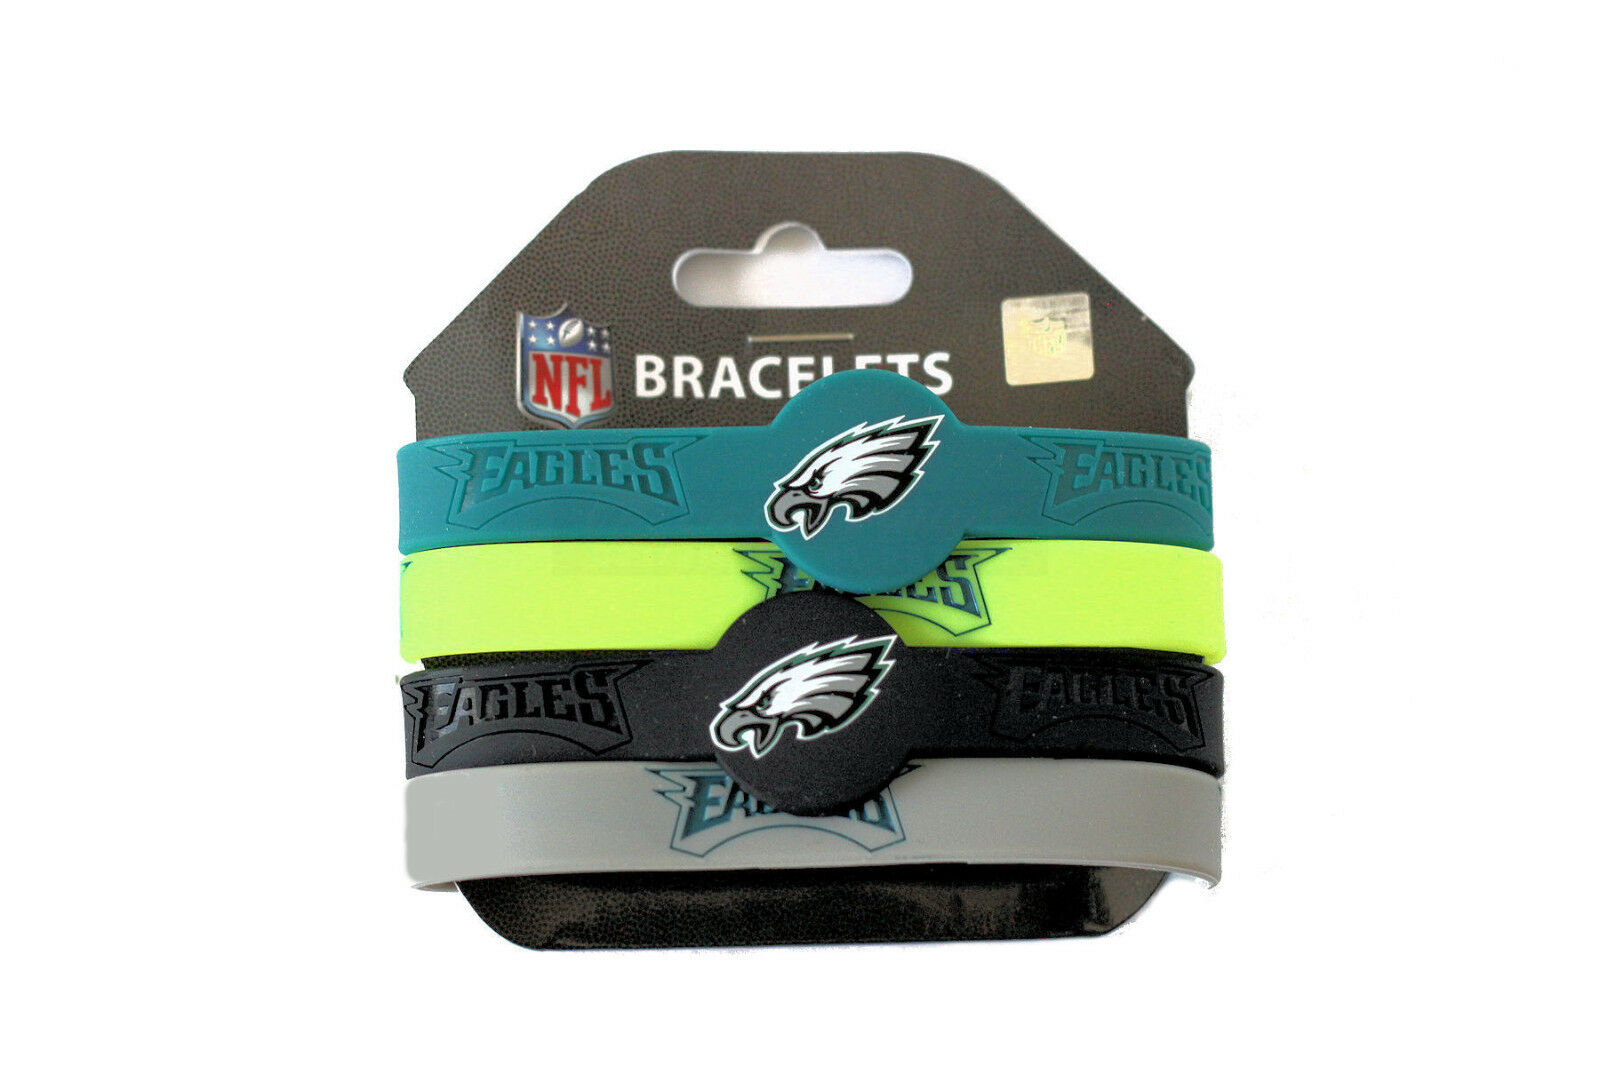 NFL bracelet rubber wrist fan band 4 PACK silicone PICK YOUR TEAM